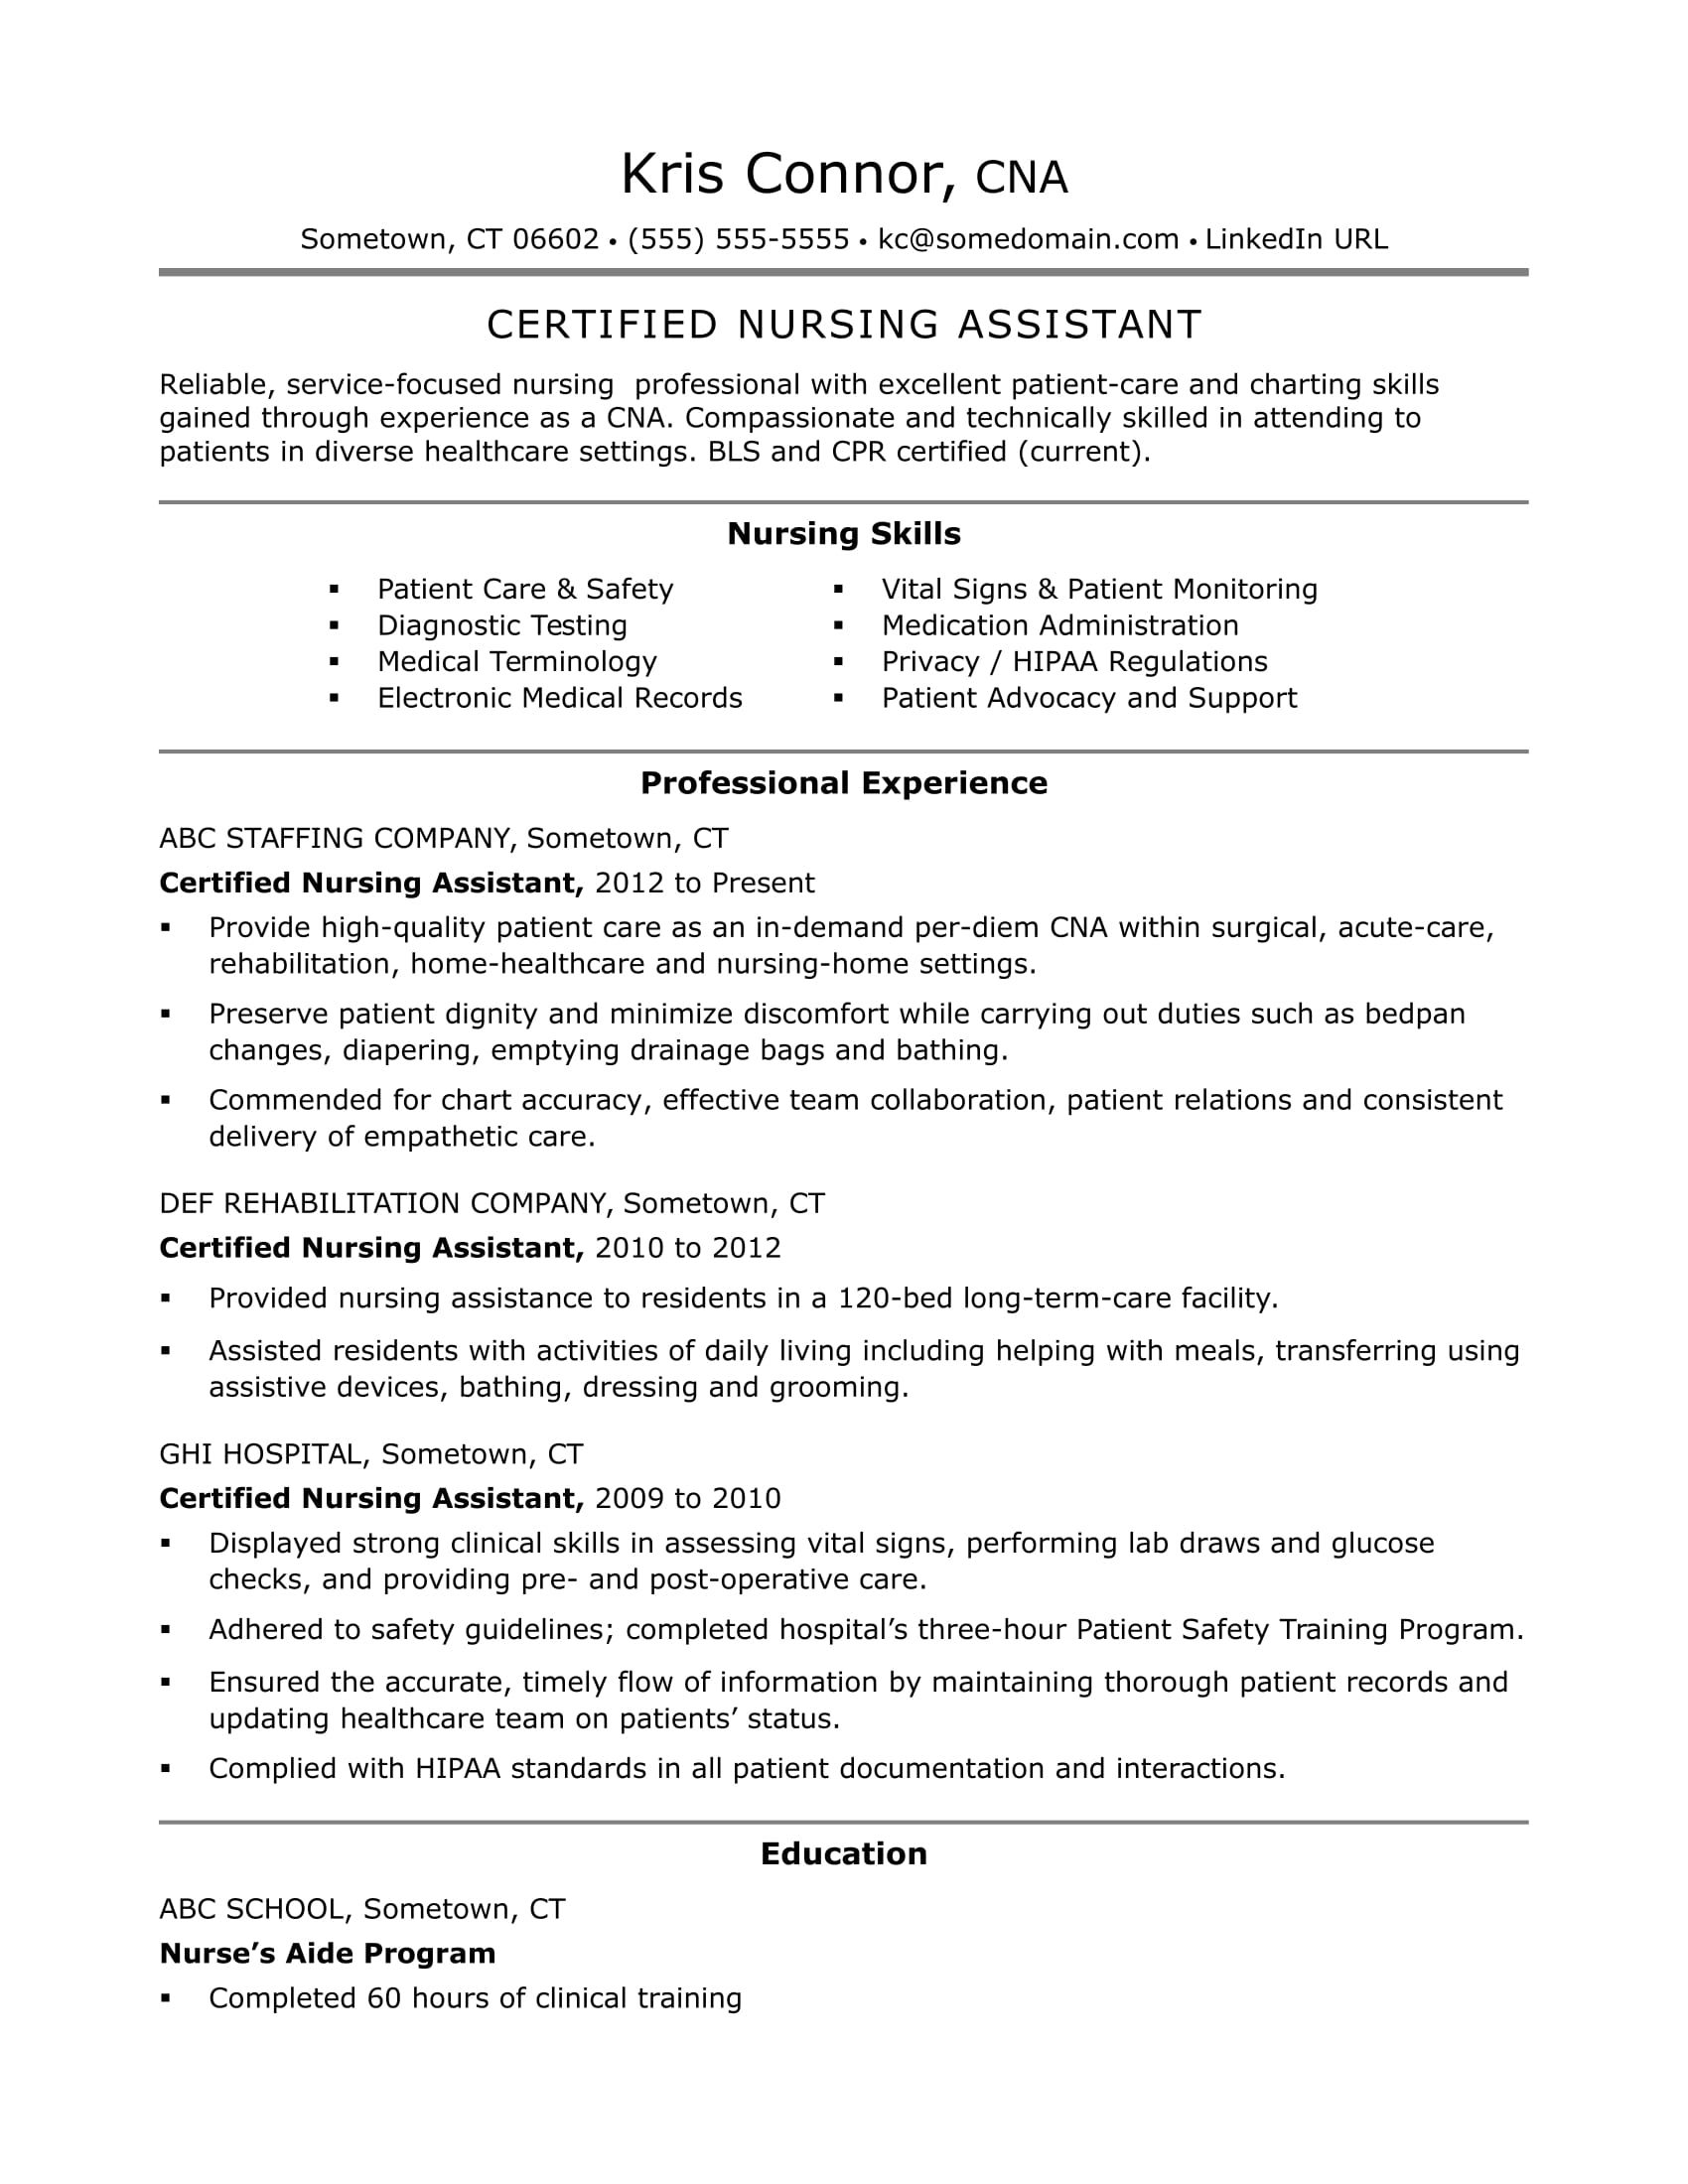 cna resume example - Resume Templates For Cna